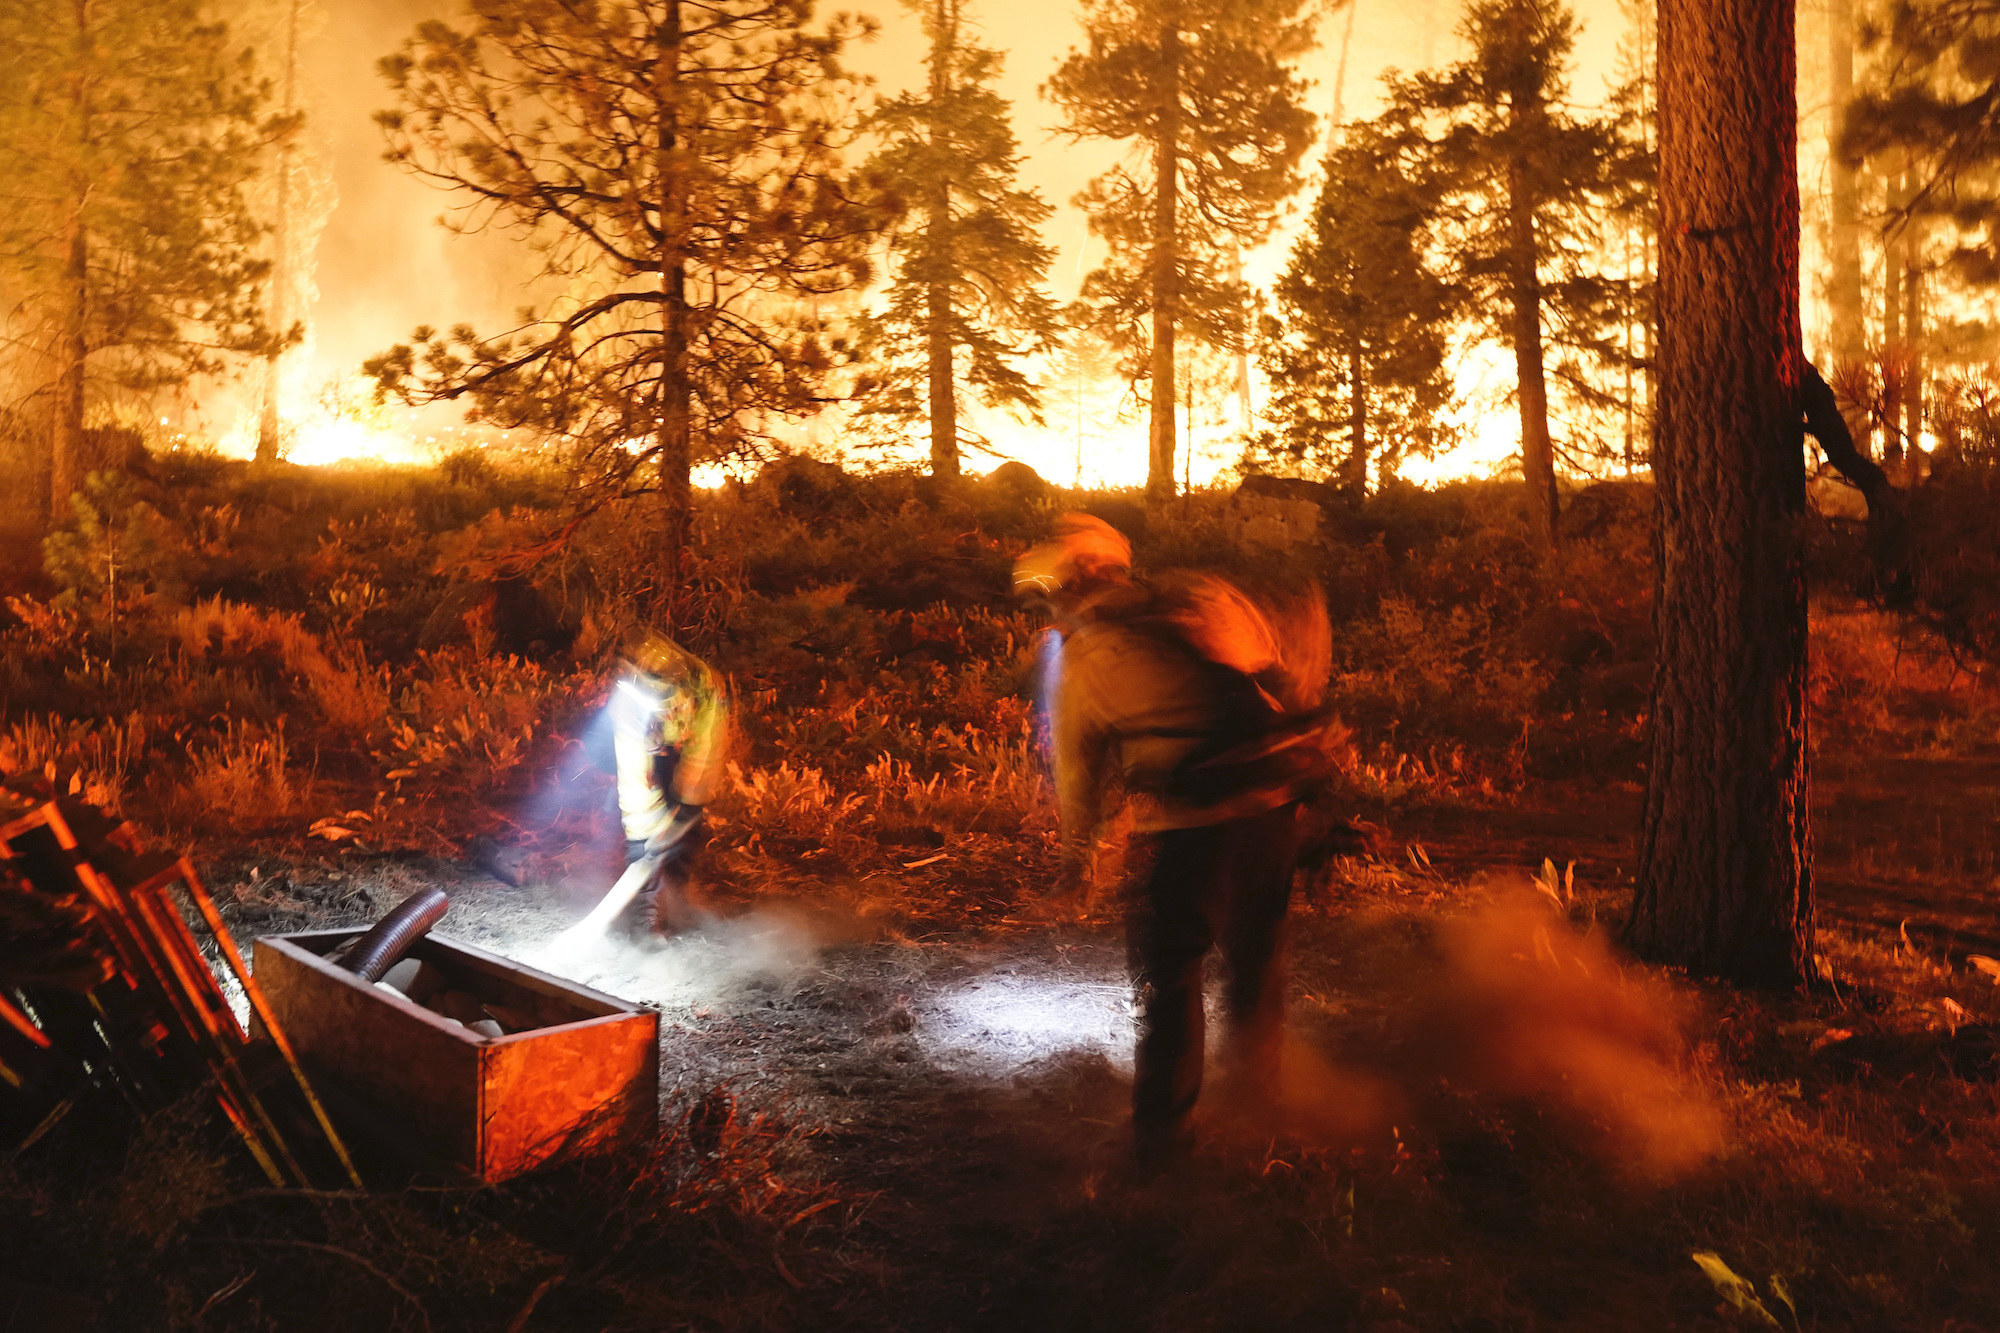 Two firefighters wearing gear and headlamps work at night in a burning forest